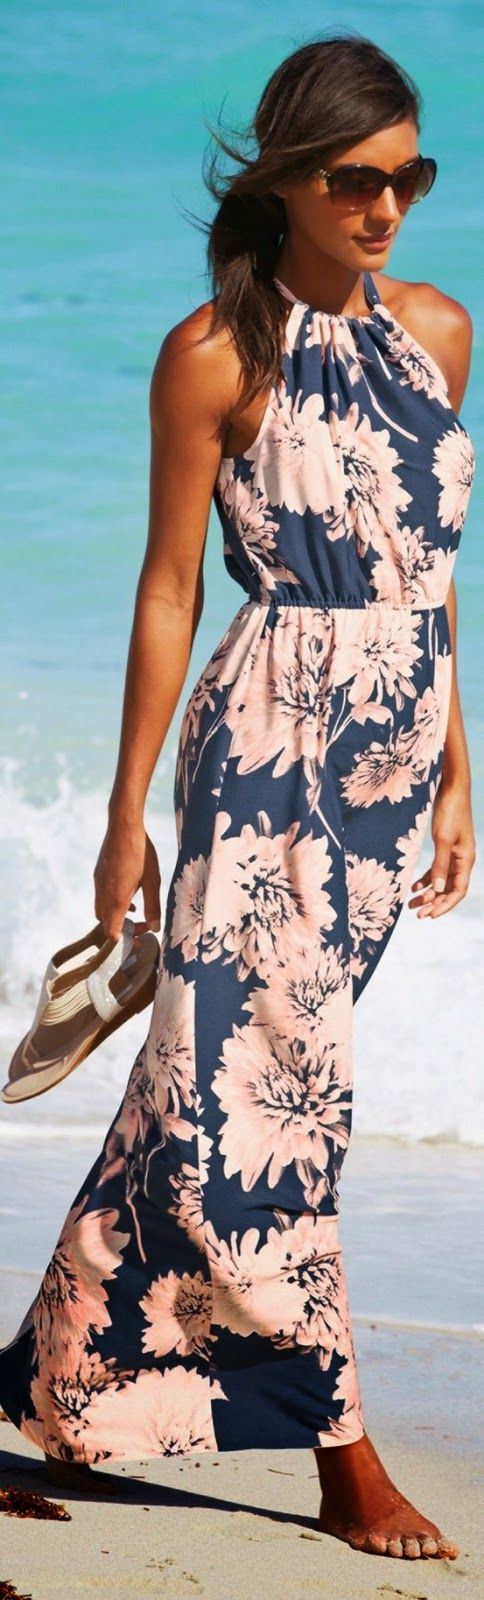 Long sun dresses work great just as much as short sundresses do! :) 80 Cute Summer Outfits Ideas for teens for 2016